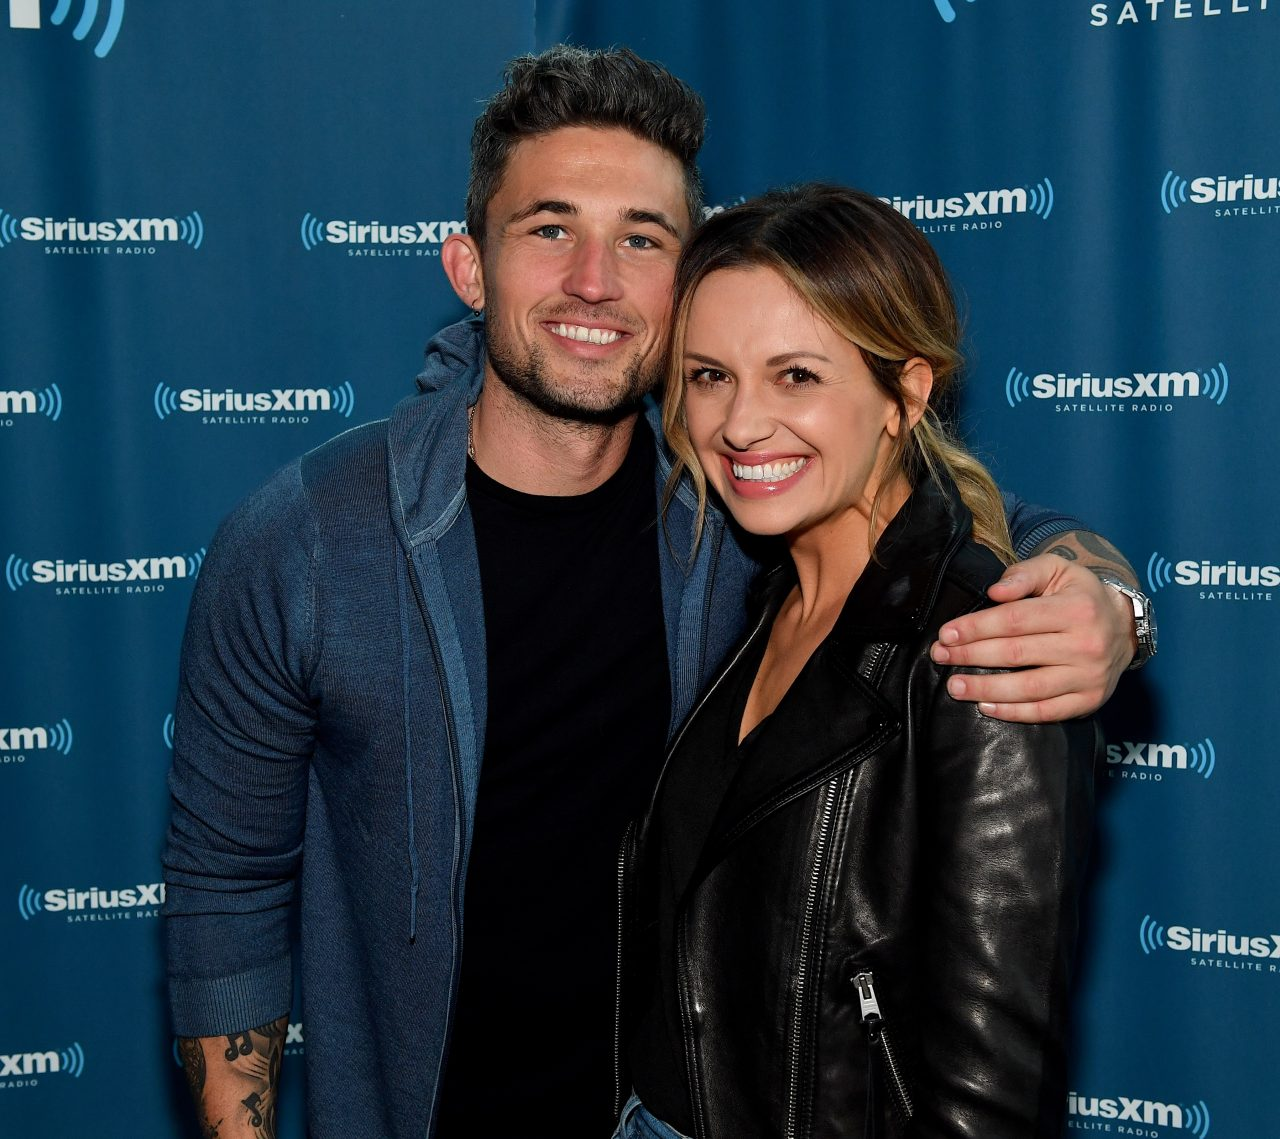 Carly Pearce's Album Will Feature a Michael Ray Collaboration